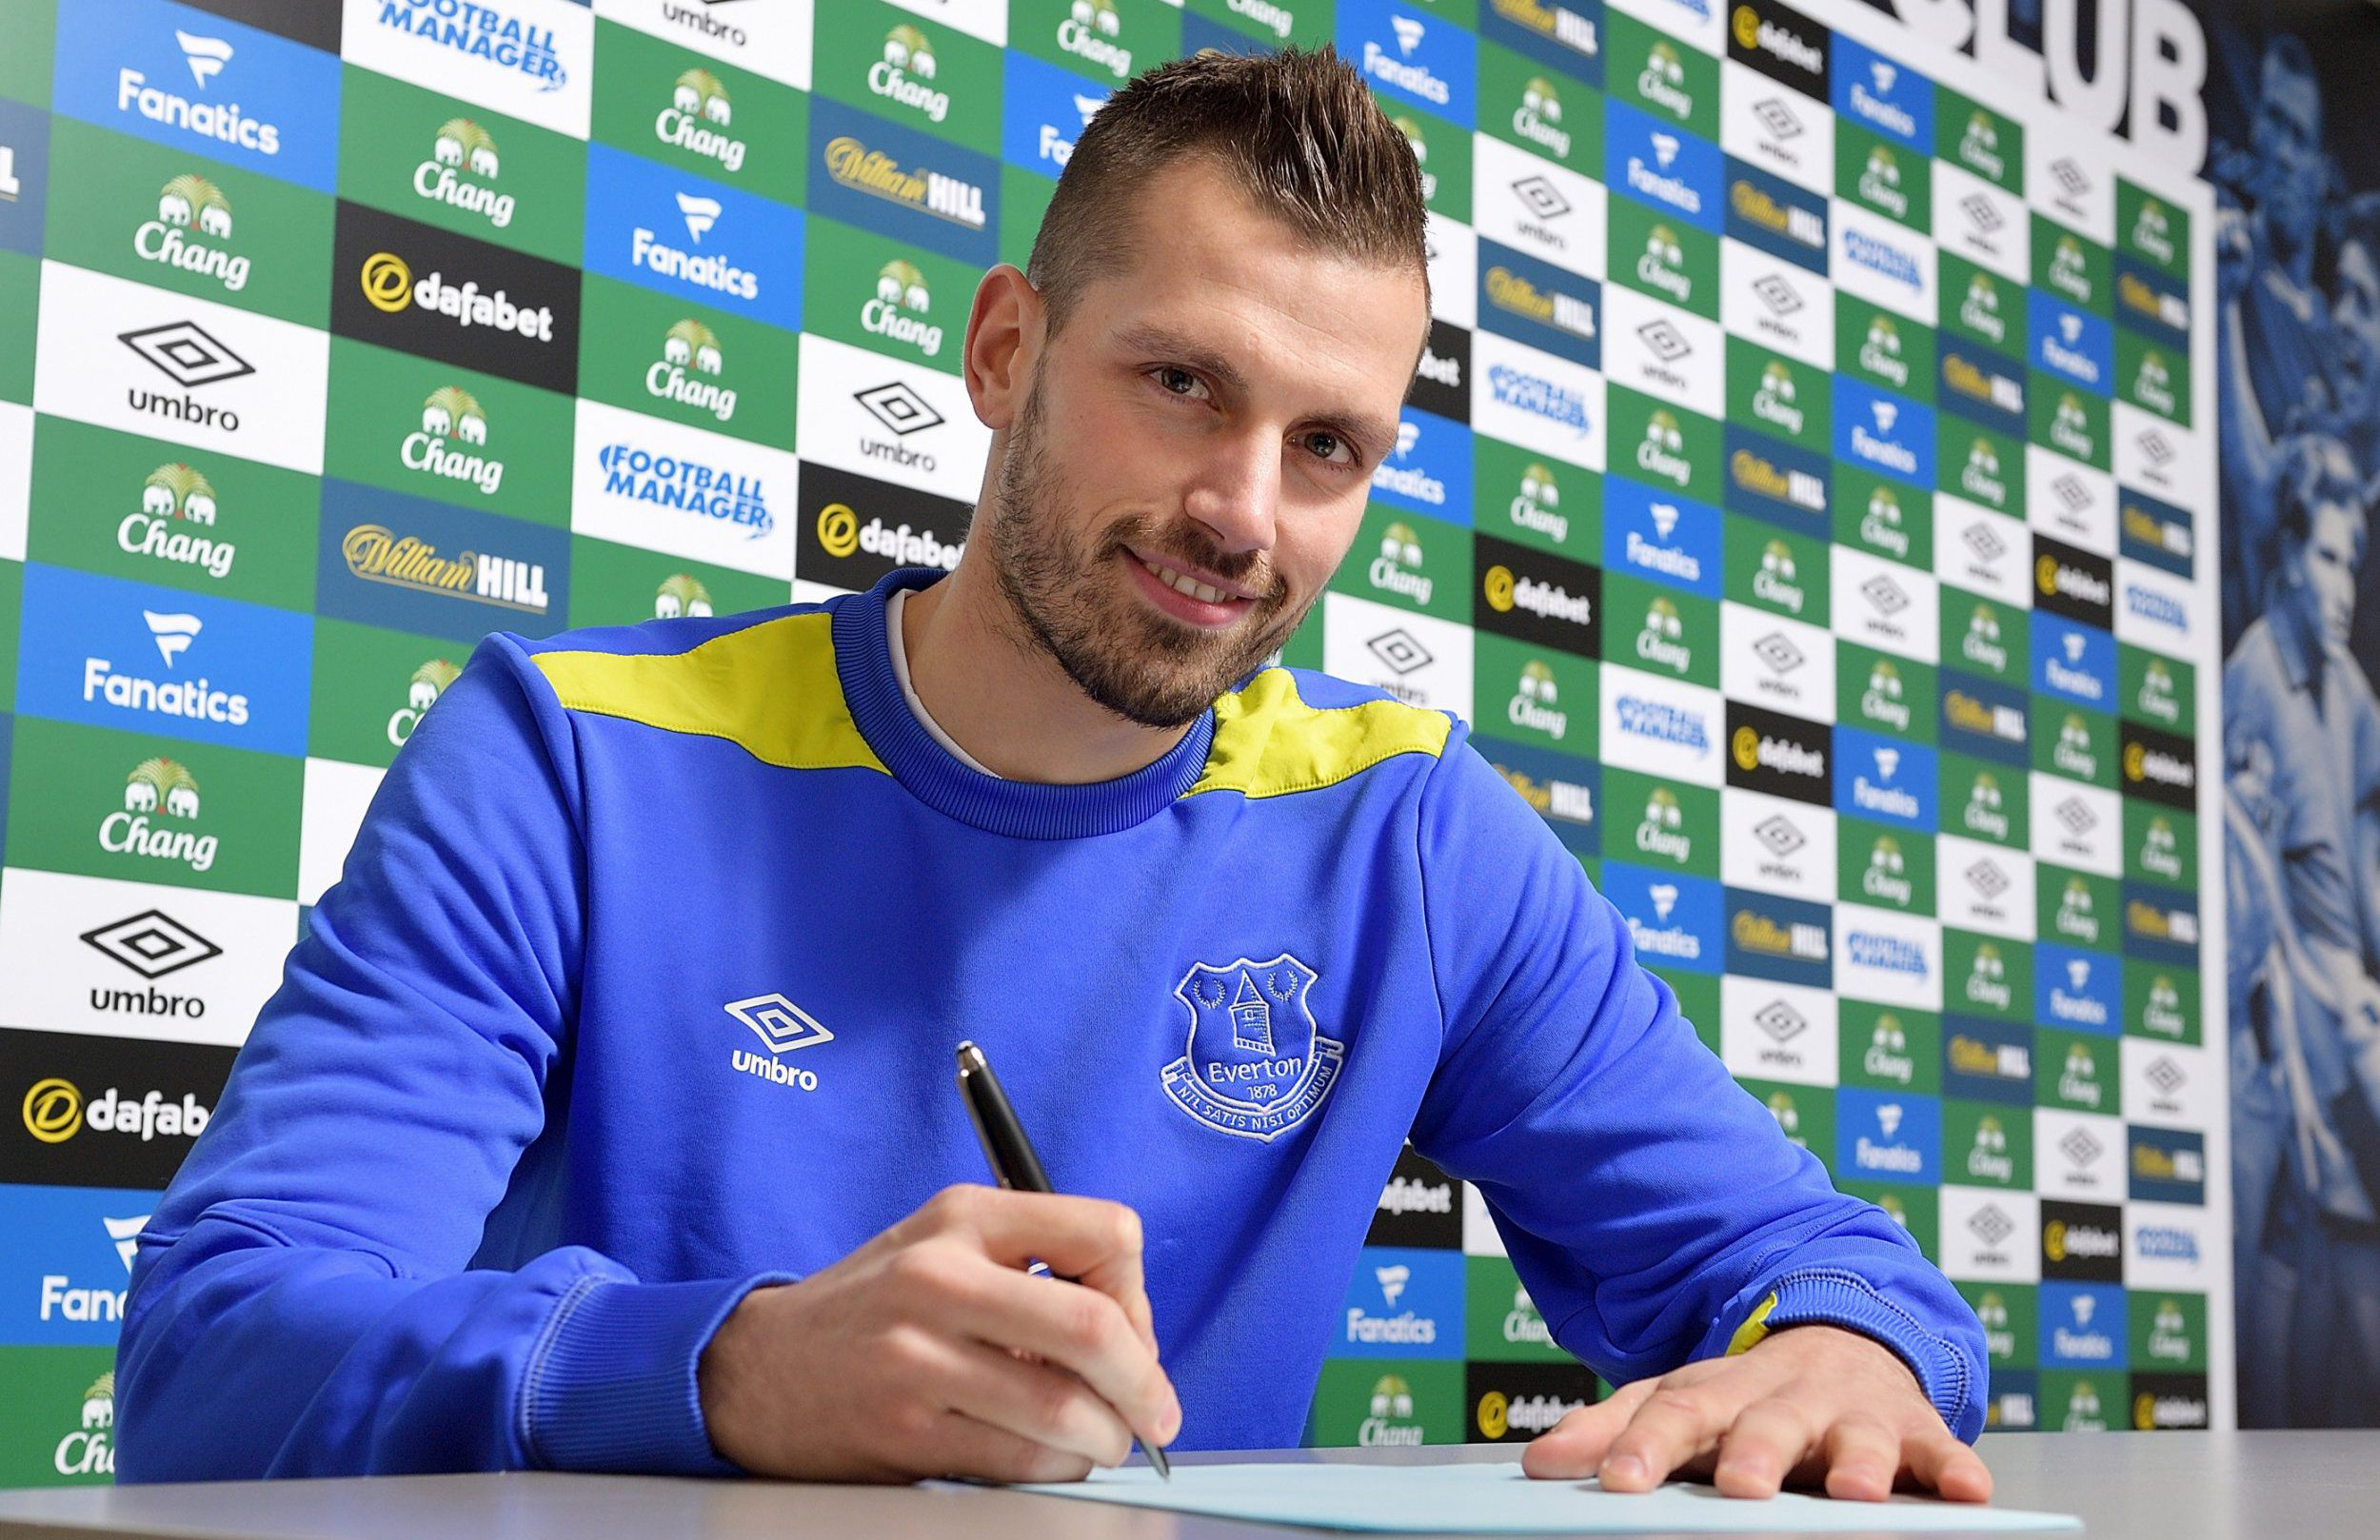 Everton announce signing of Morgan Schneiderlin from Manchester United